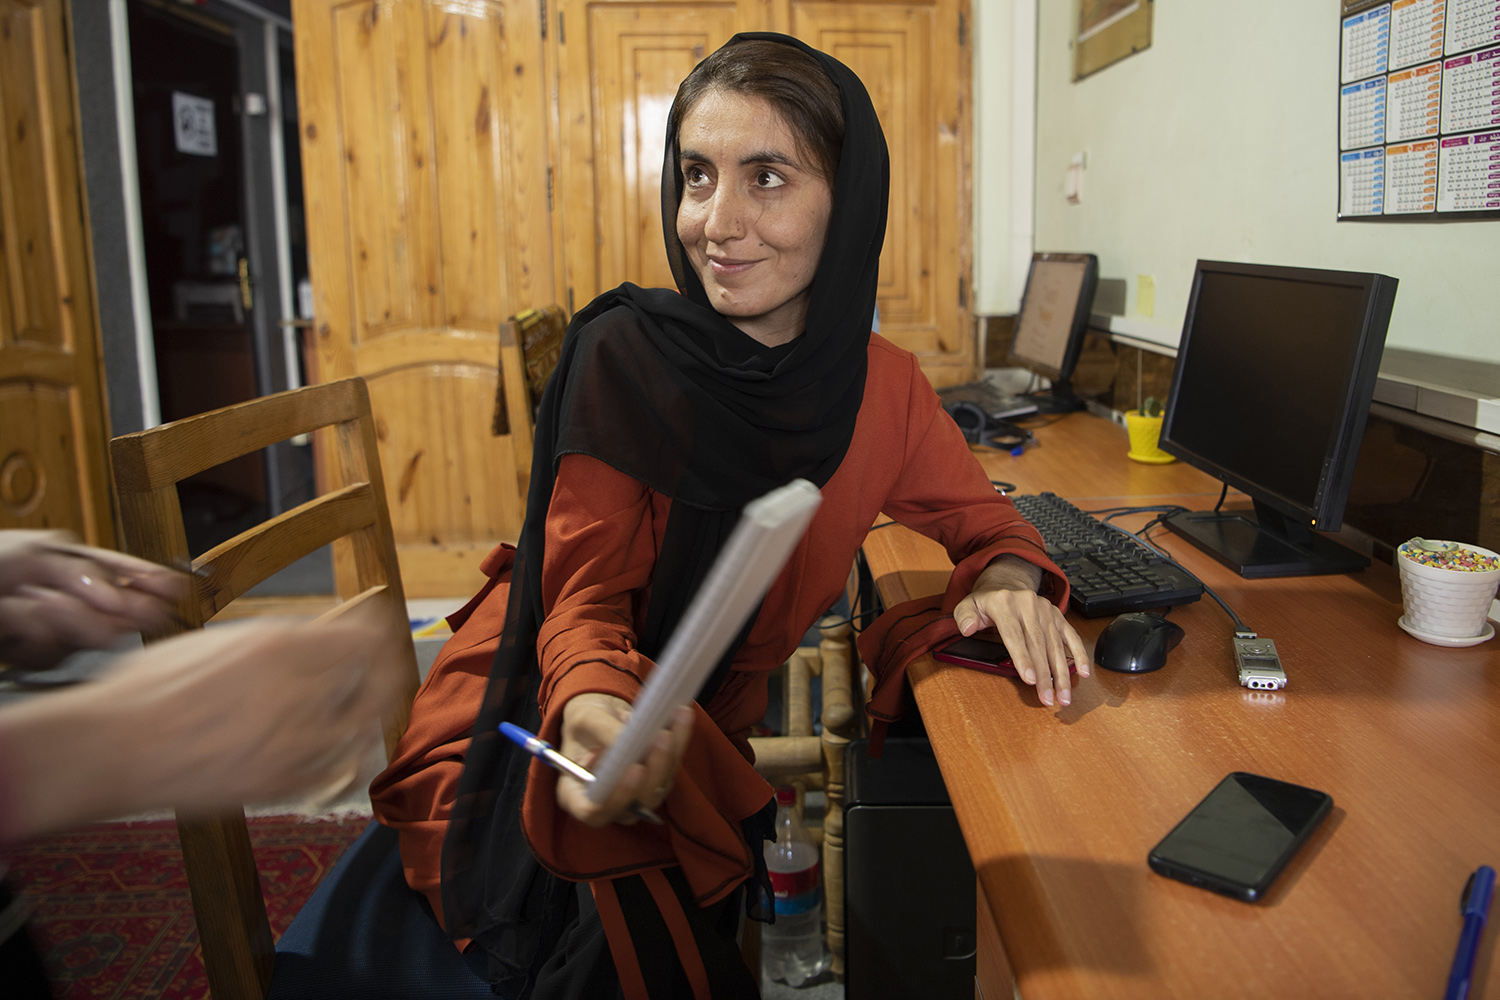 Somaia Valizadeh, an investigative journalist at Khillid Radio, talks during an interview at her office in Herat city on Aug. 3.